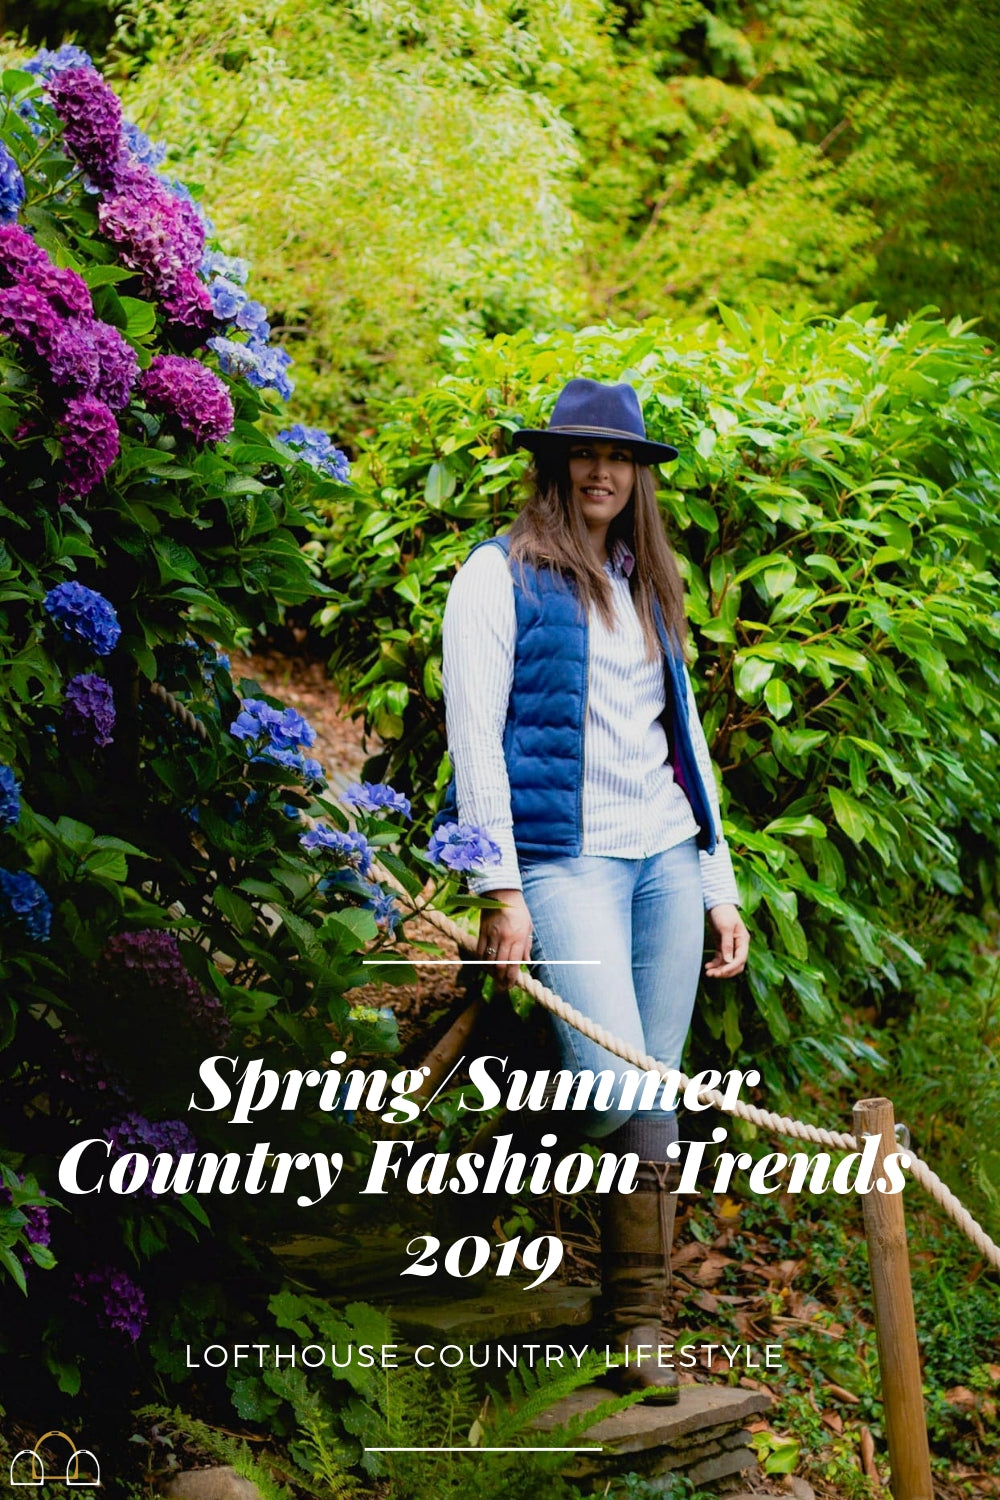 Spring Summer British Country Fashion Trends in 2019 Blog